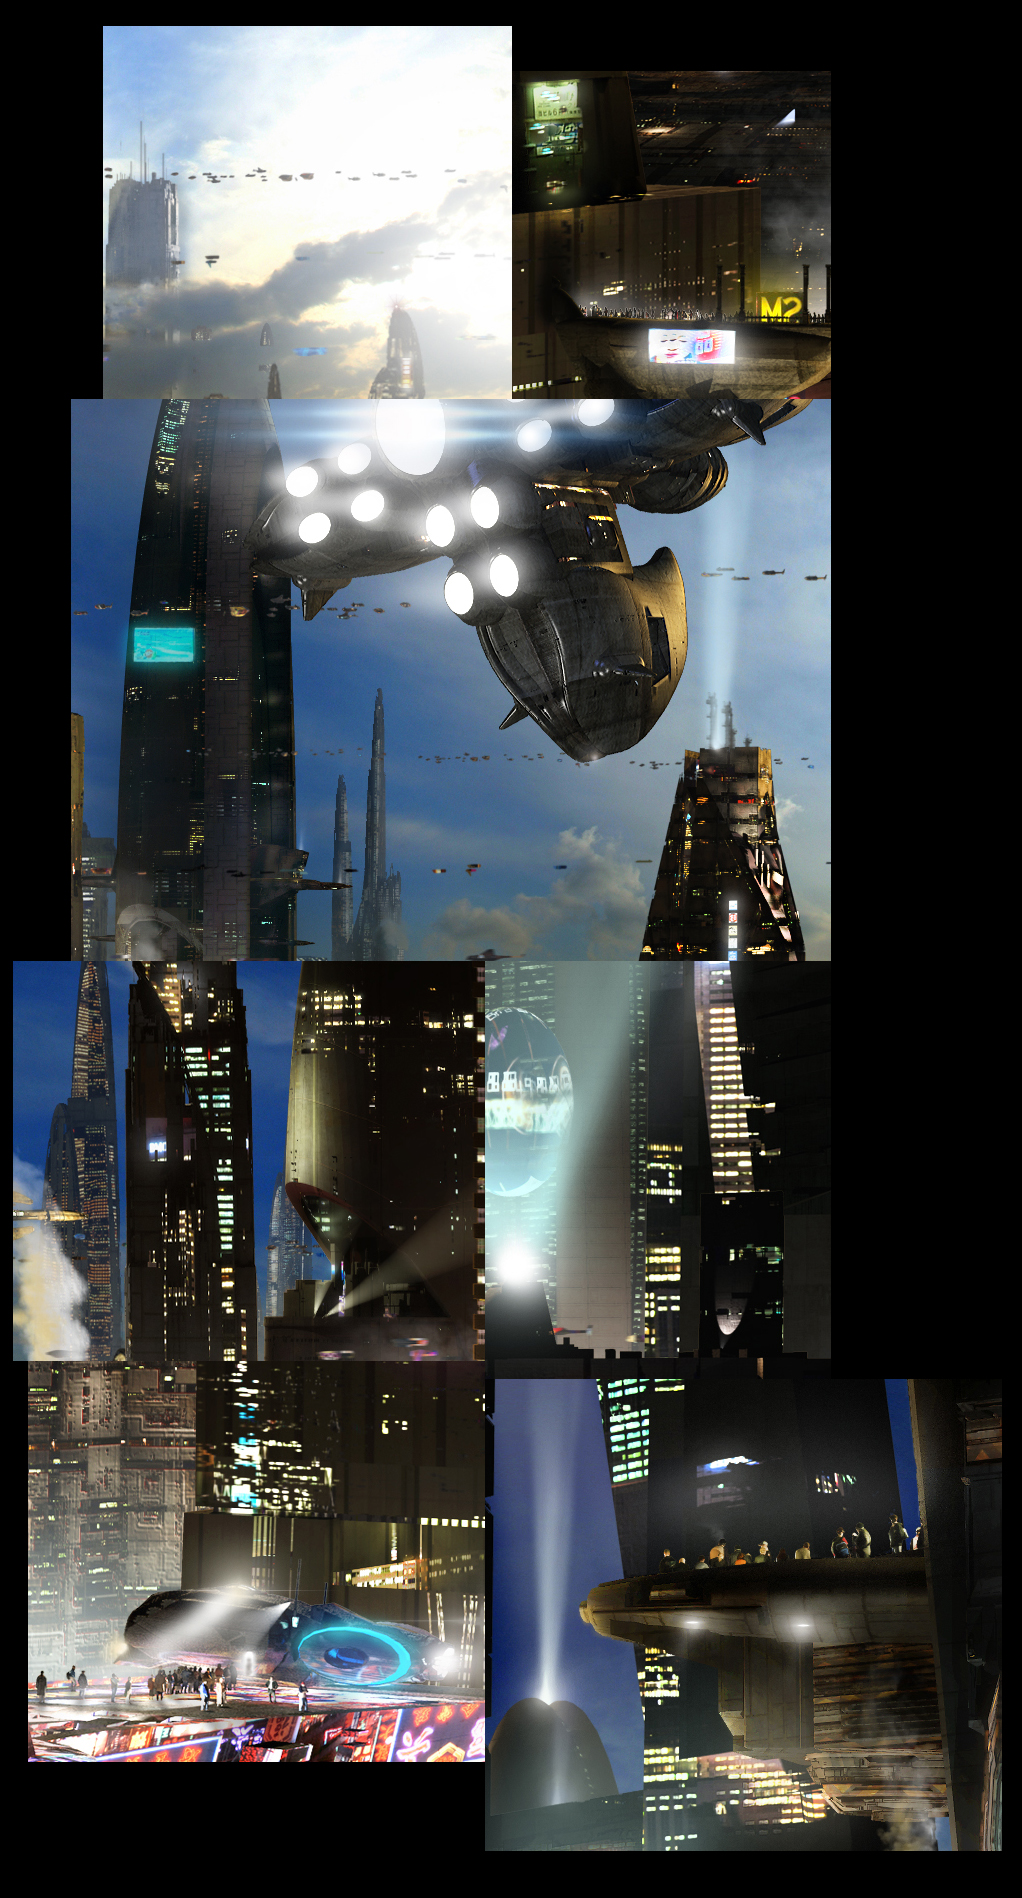 Futuristic City 3 Details by rich35211